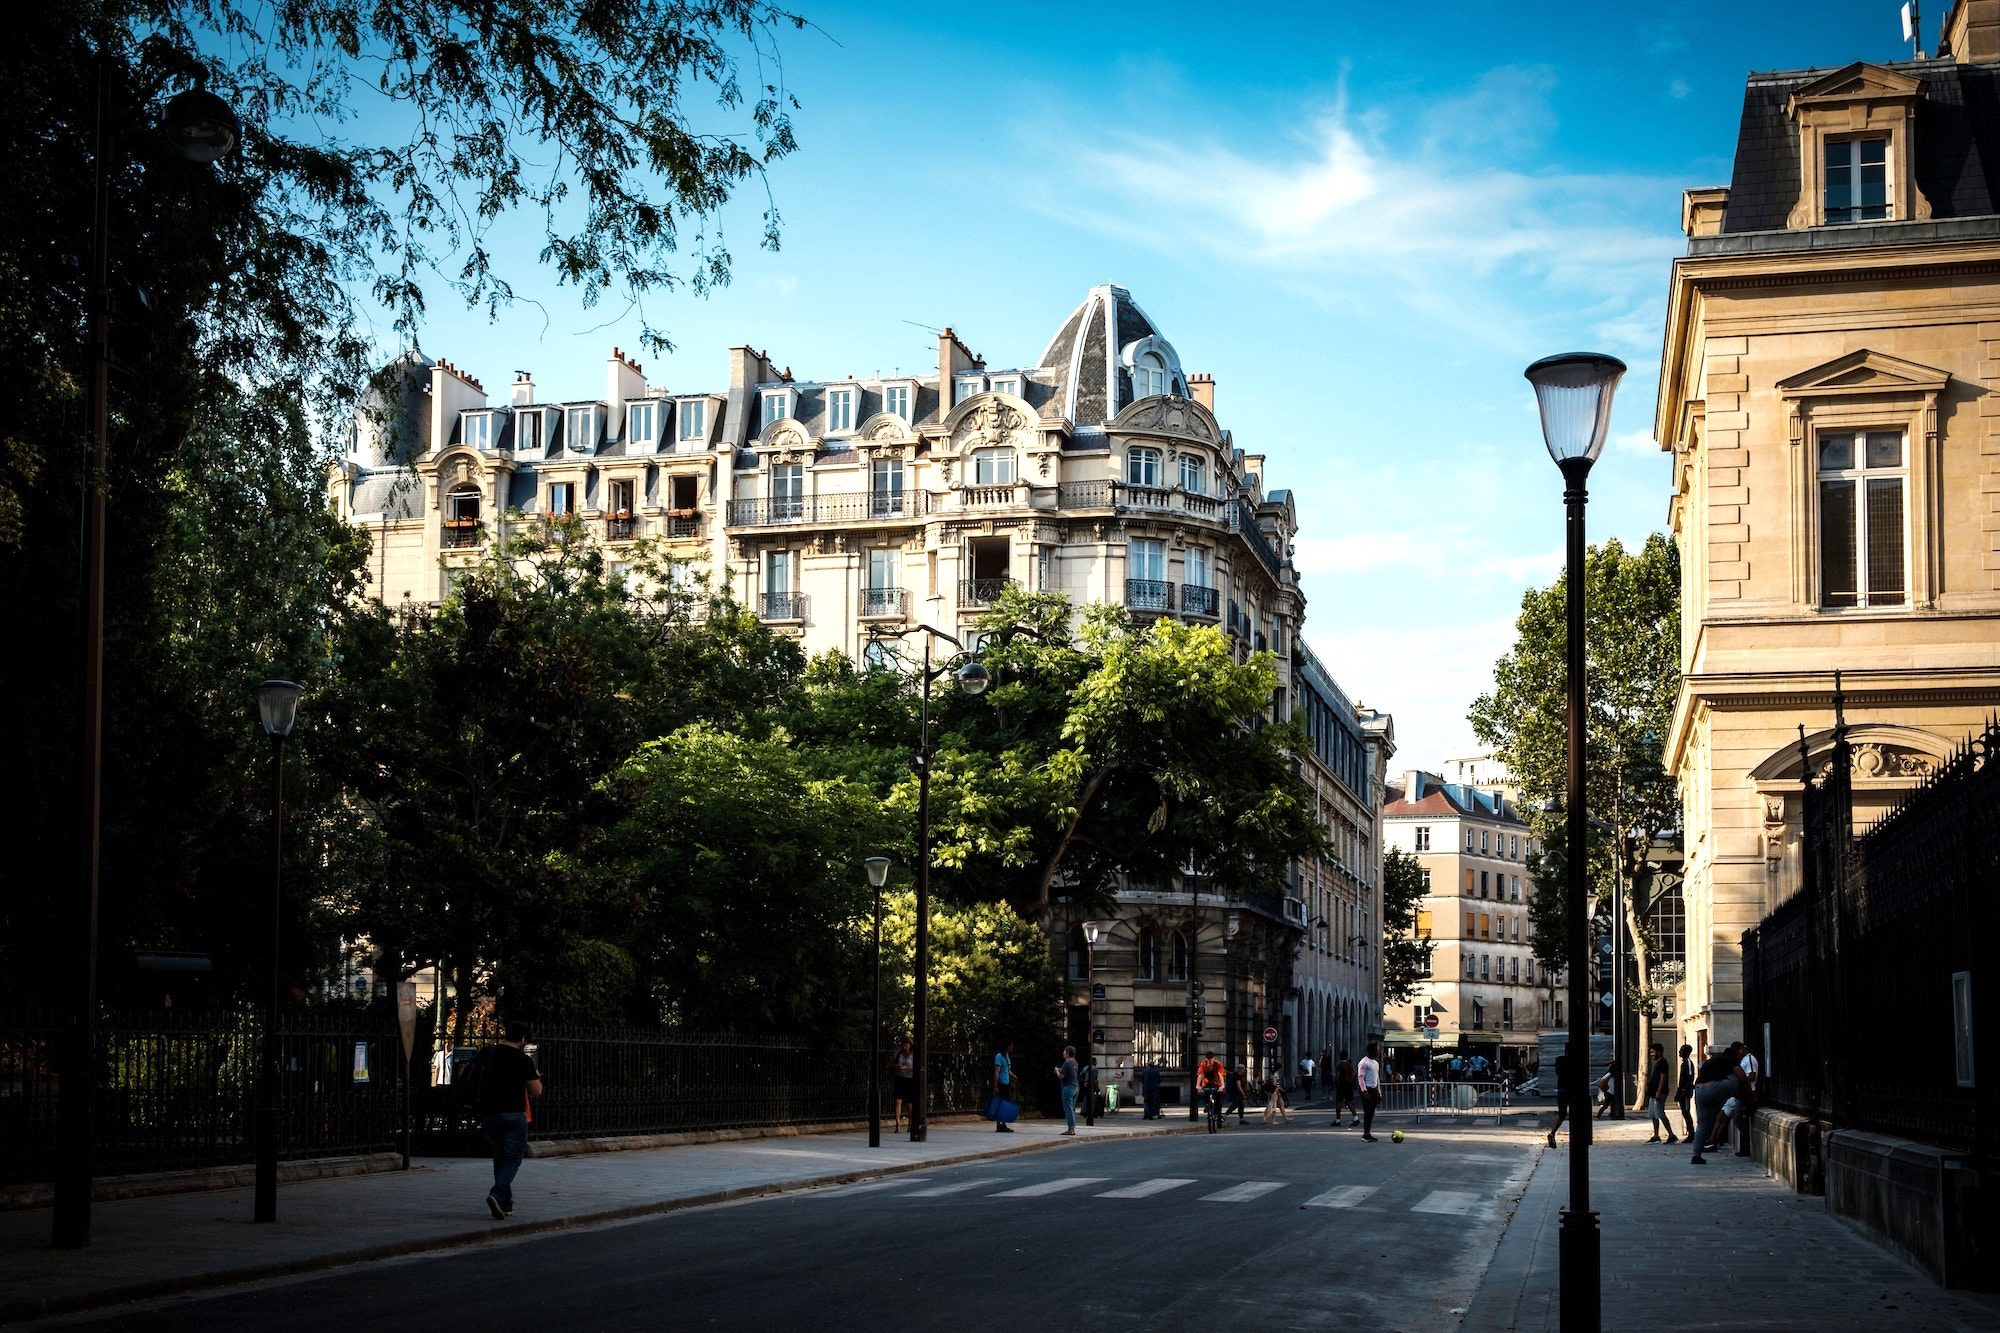 Sundays in Paris: What to do on a Sunday in the Marais